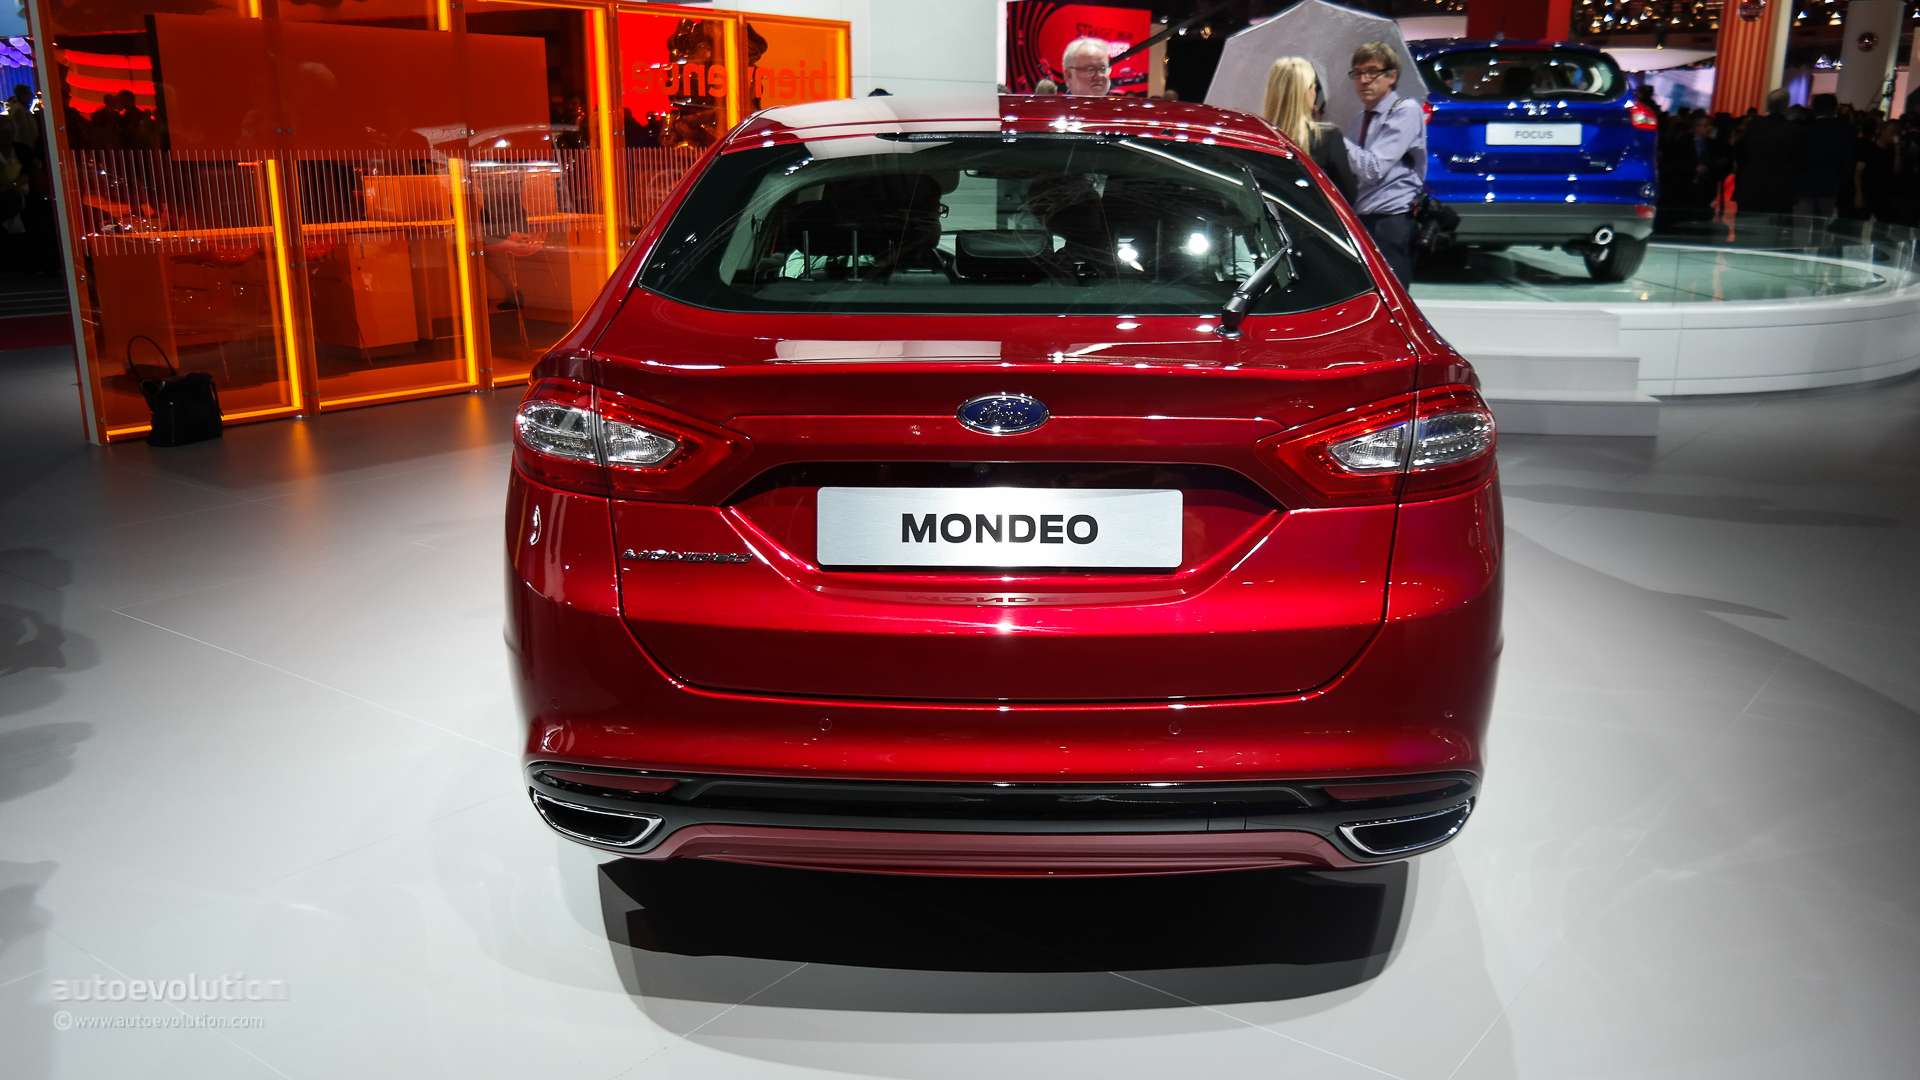 ford mondeo iv sedan 2015 images #10